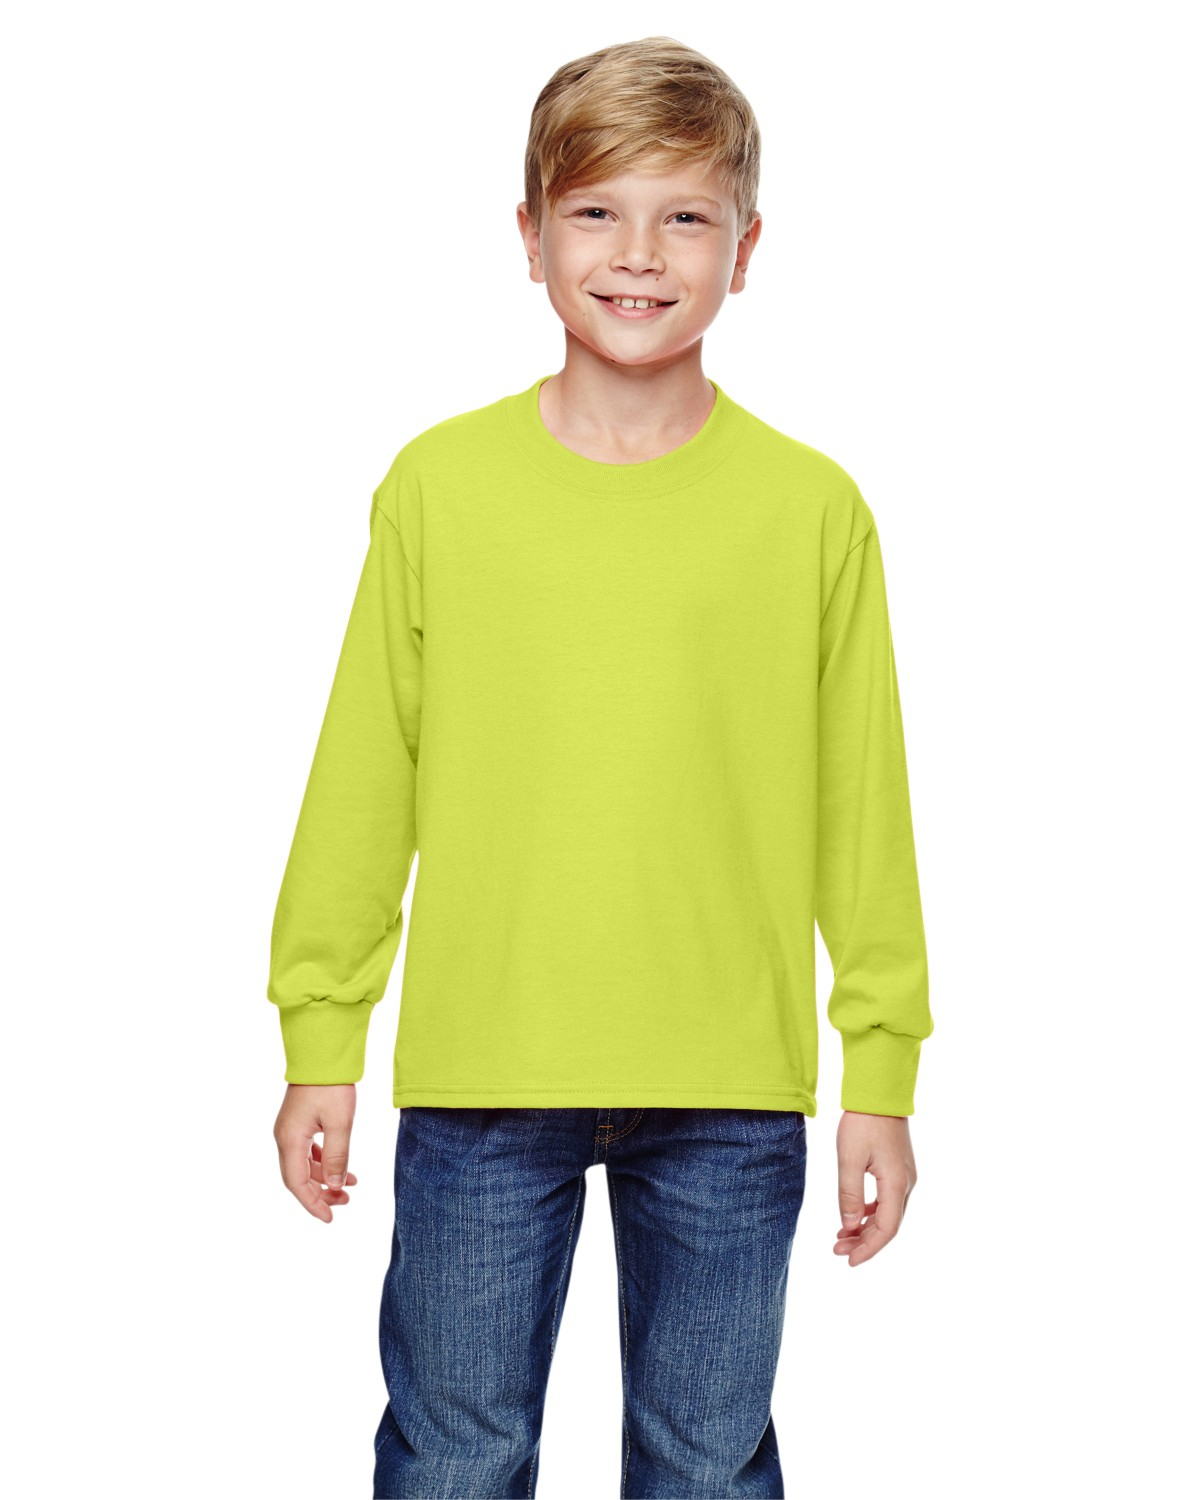 4930B Fruit of the Loom SAFETY GREEN